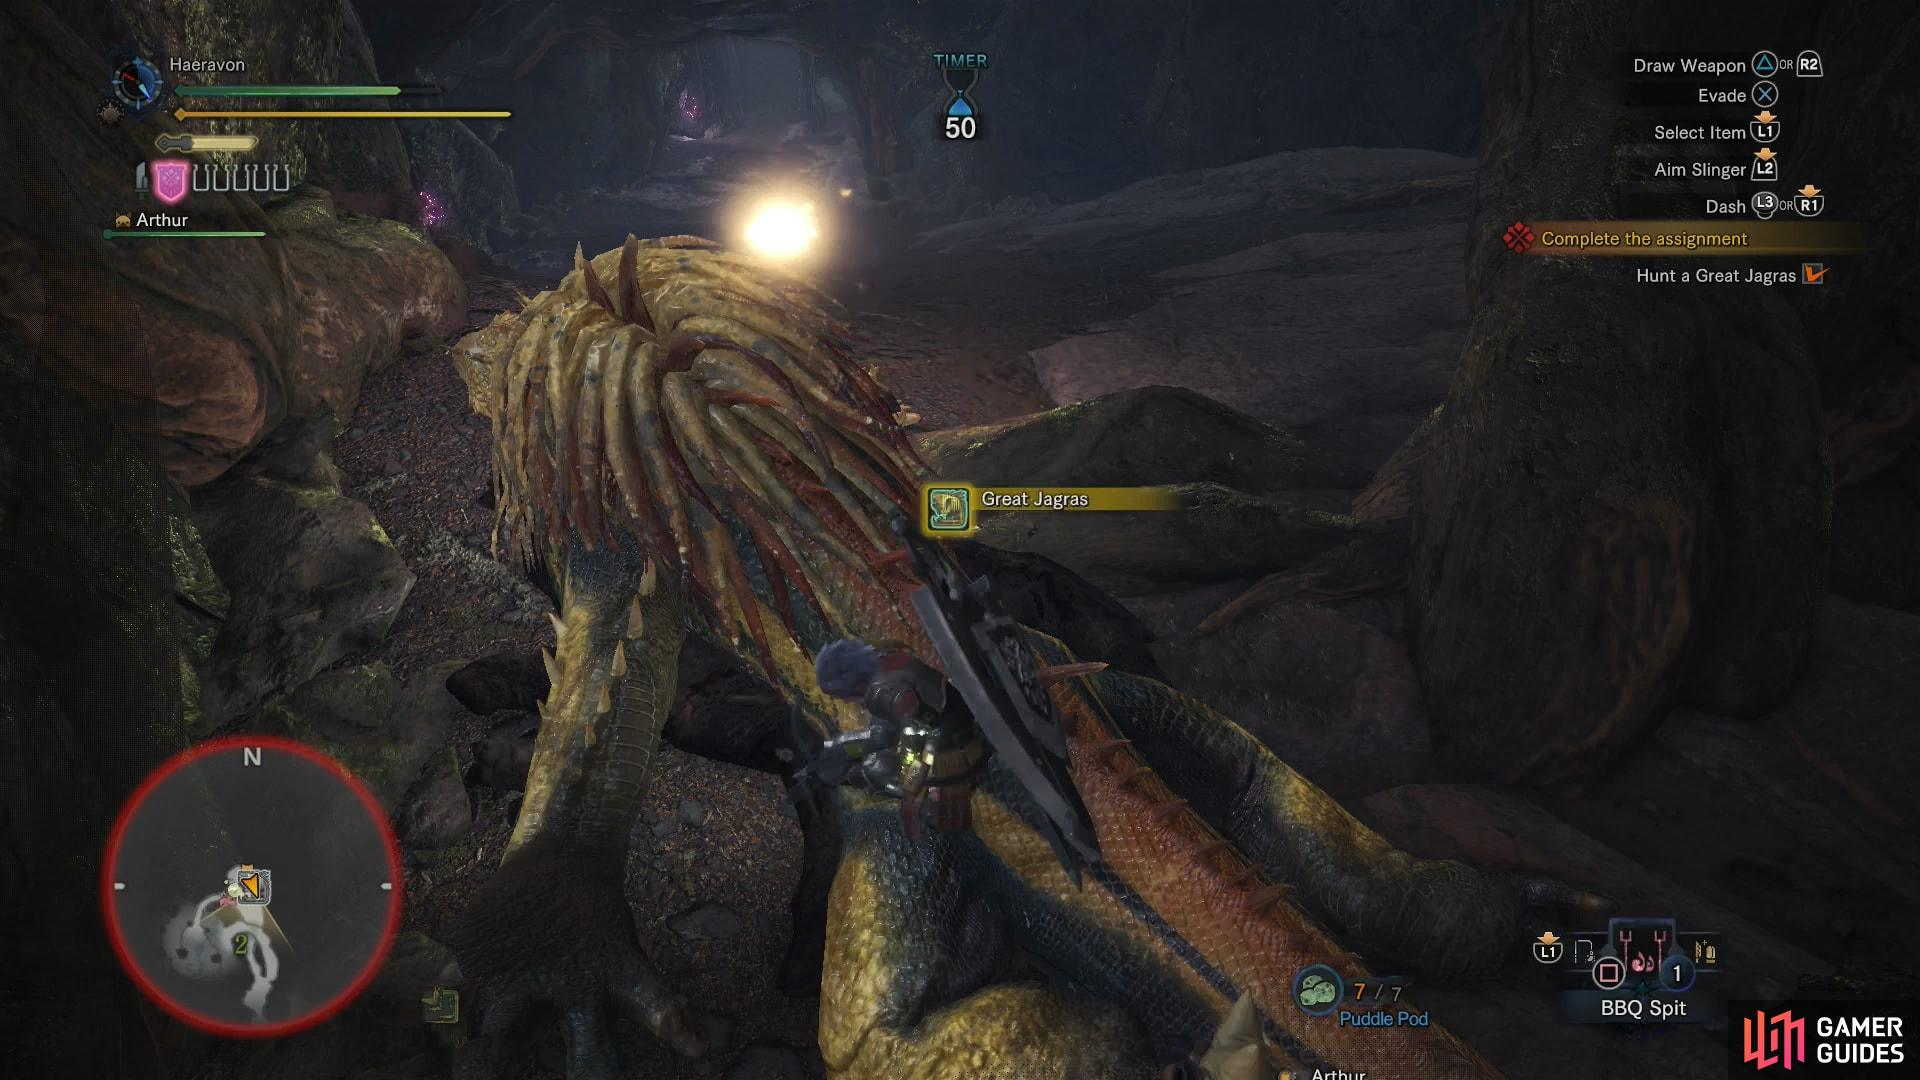 After slaying the Great Jagras, be sure to carve materials out of its corpse